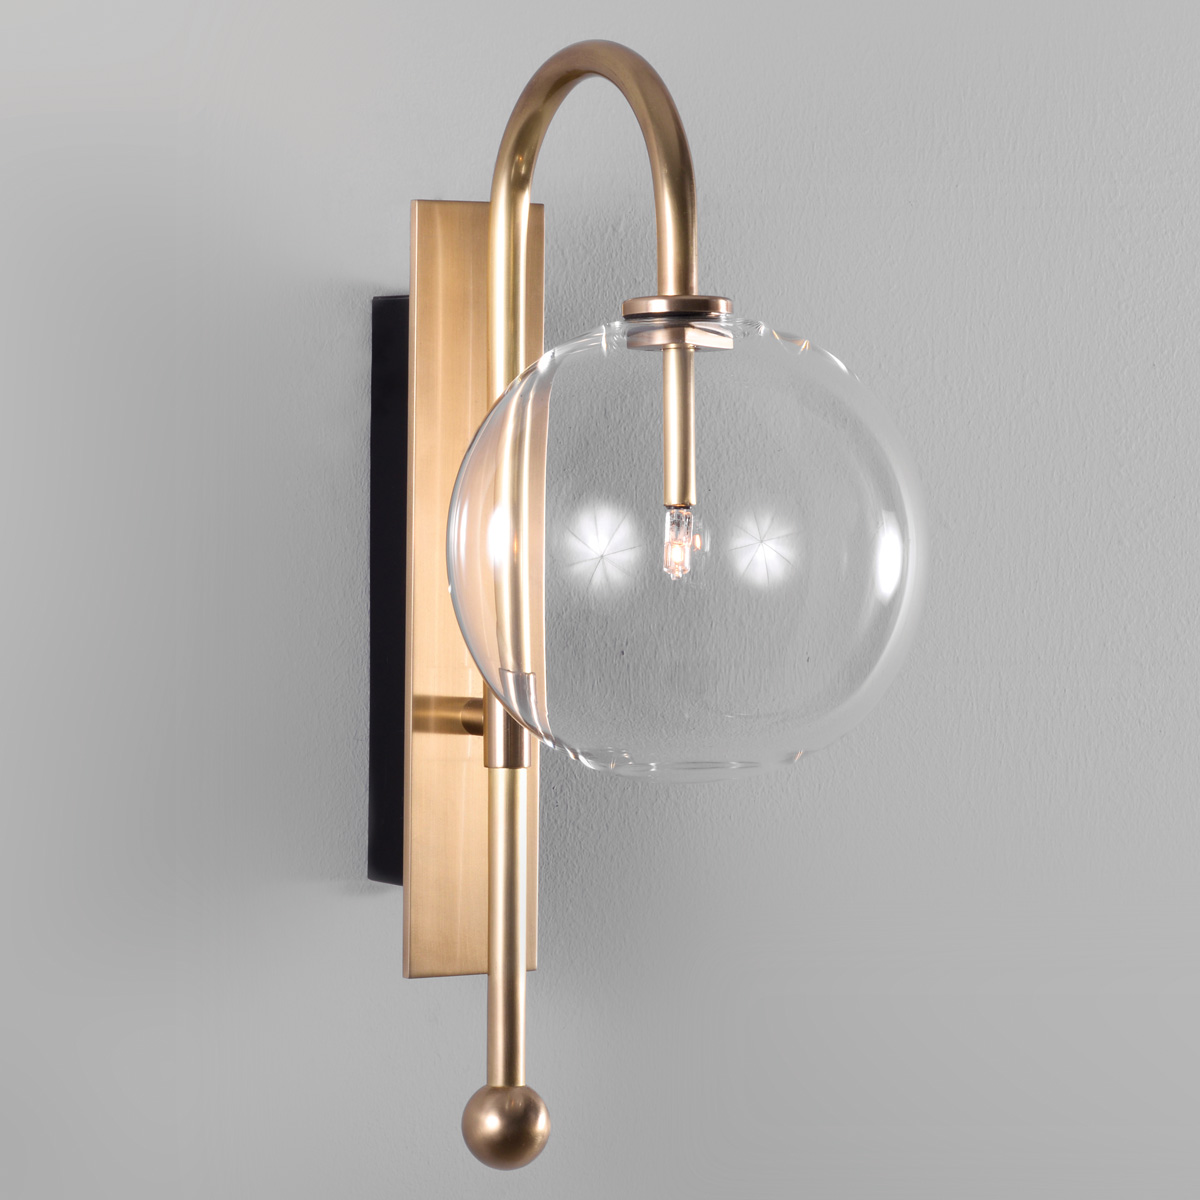 Casa Moderne And Design.Modern Borosilicate Clear Glass Ball Wall Lamp Naples Casa Lumi